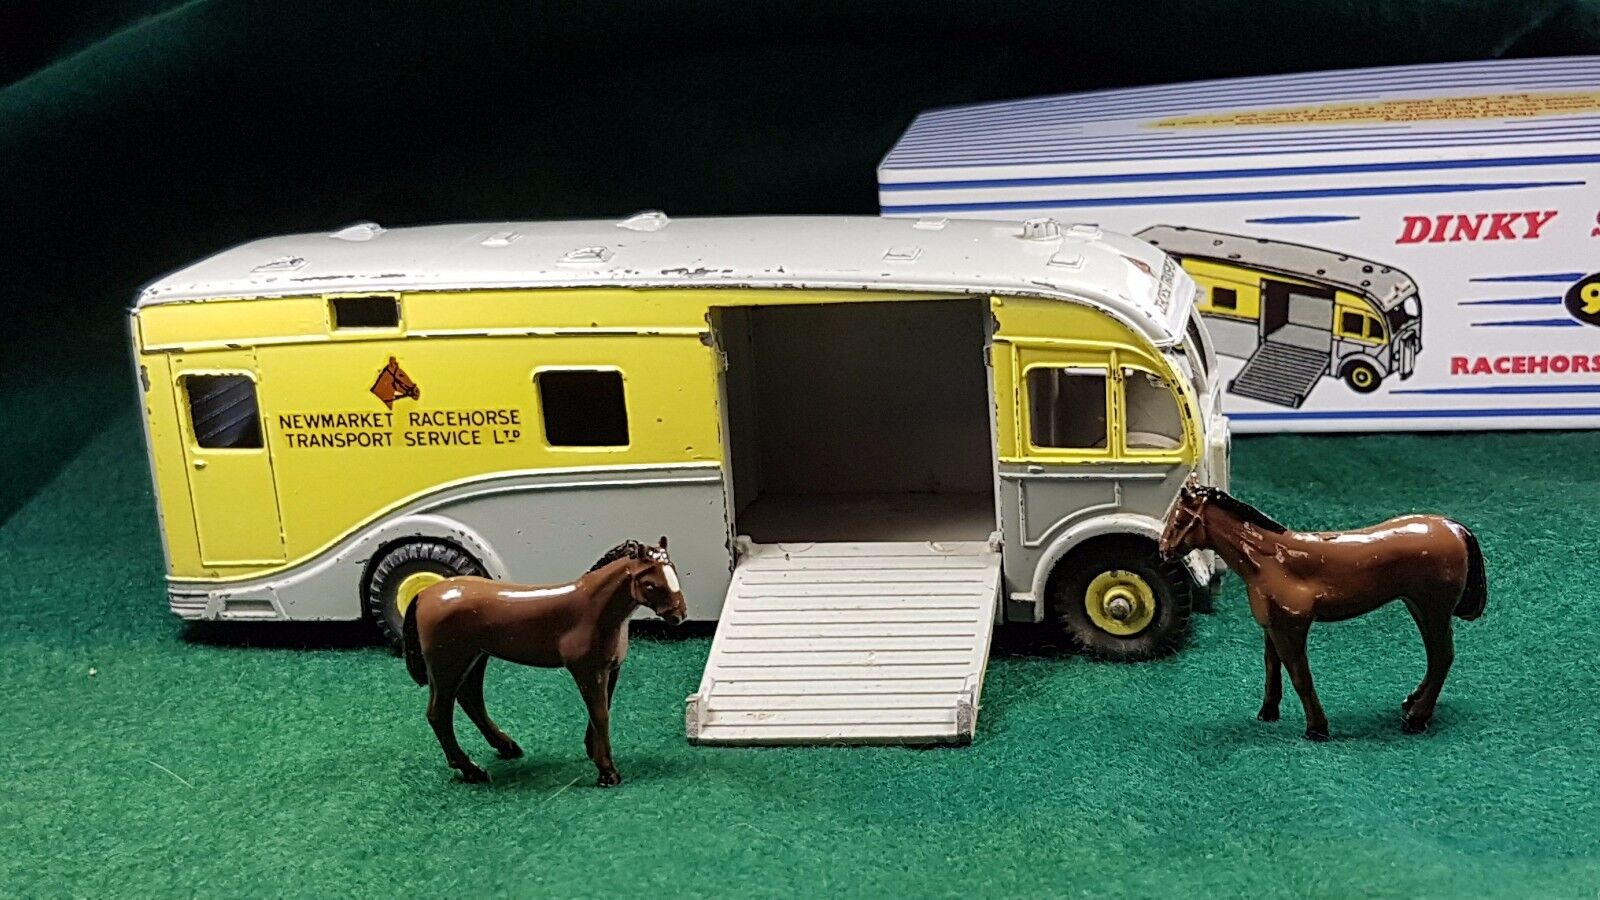 DINKY TOYS №979 NEWMARKET RACEHORSE TRANSPORT MAUDSLAY HORSEBOX RARE c w BOX